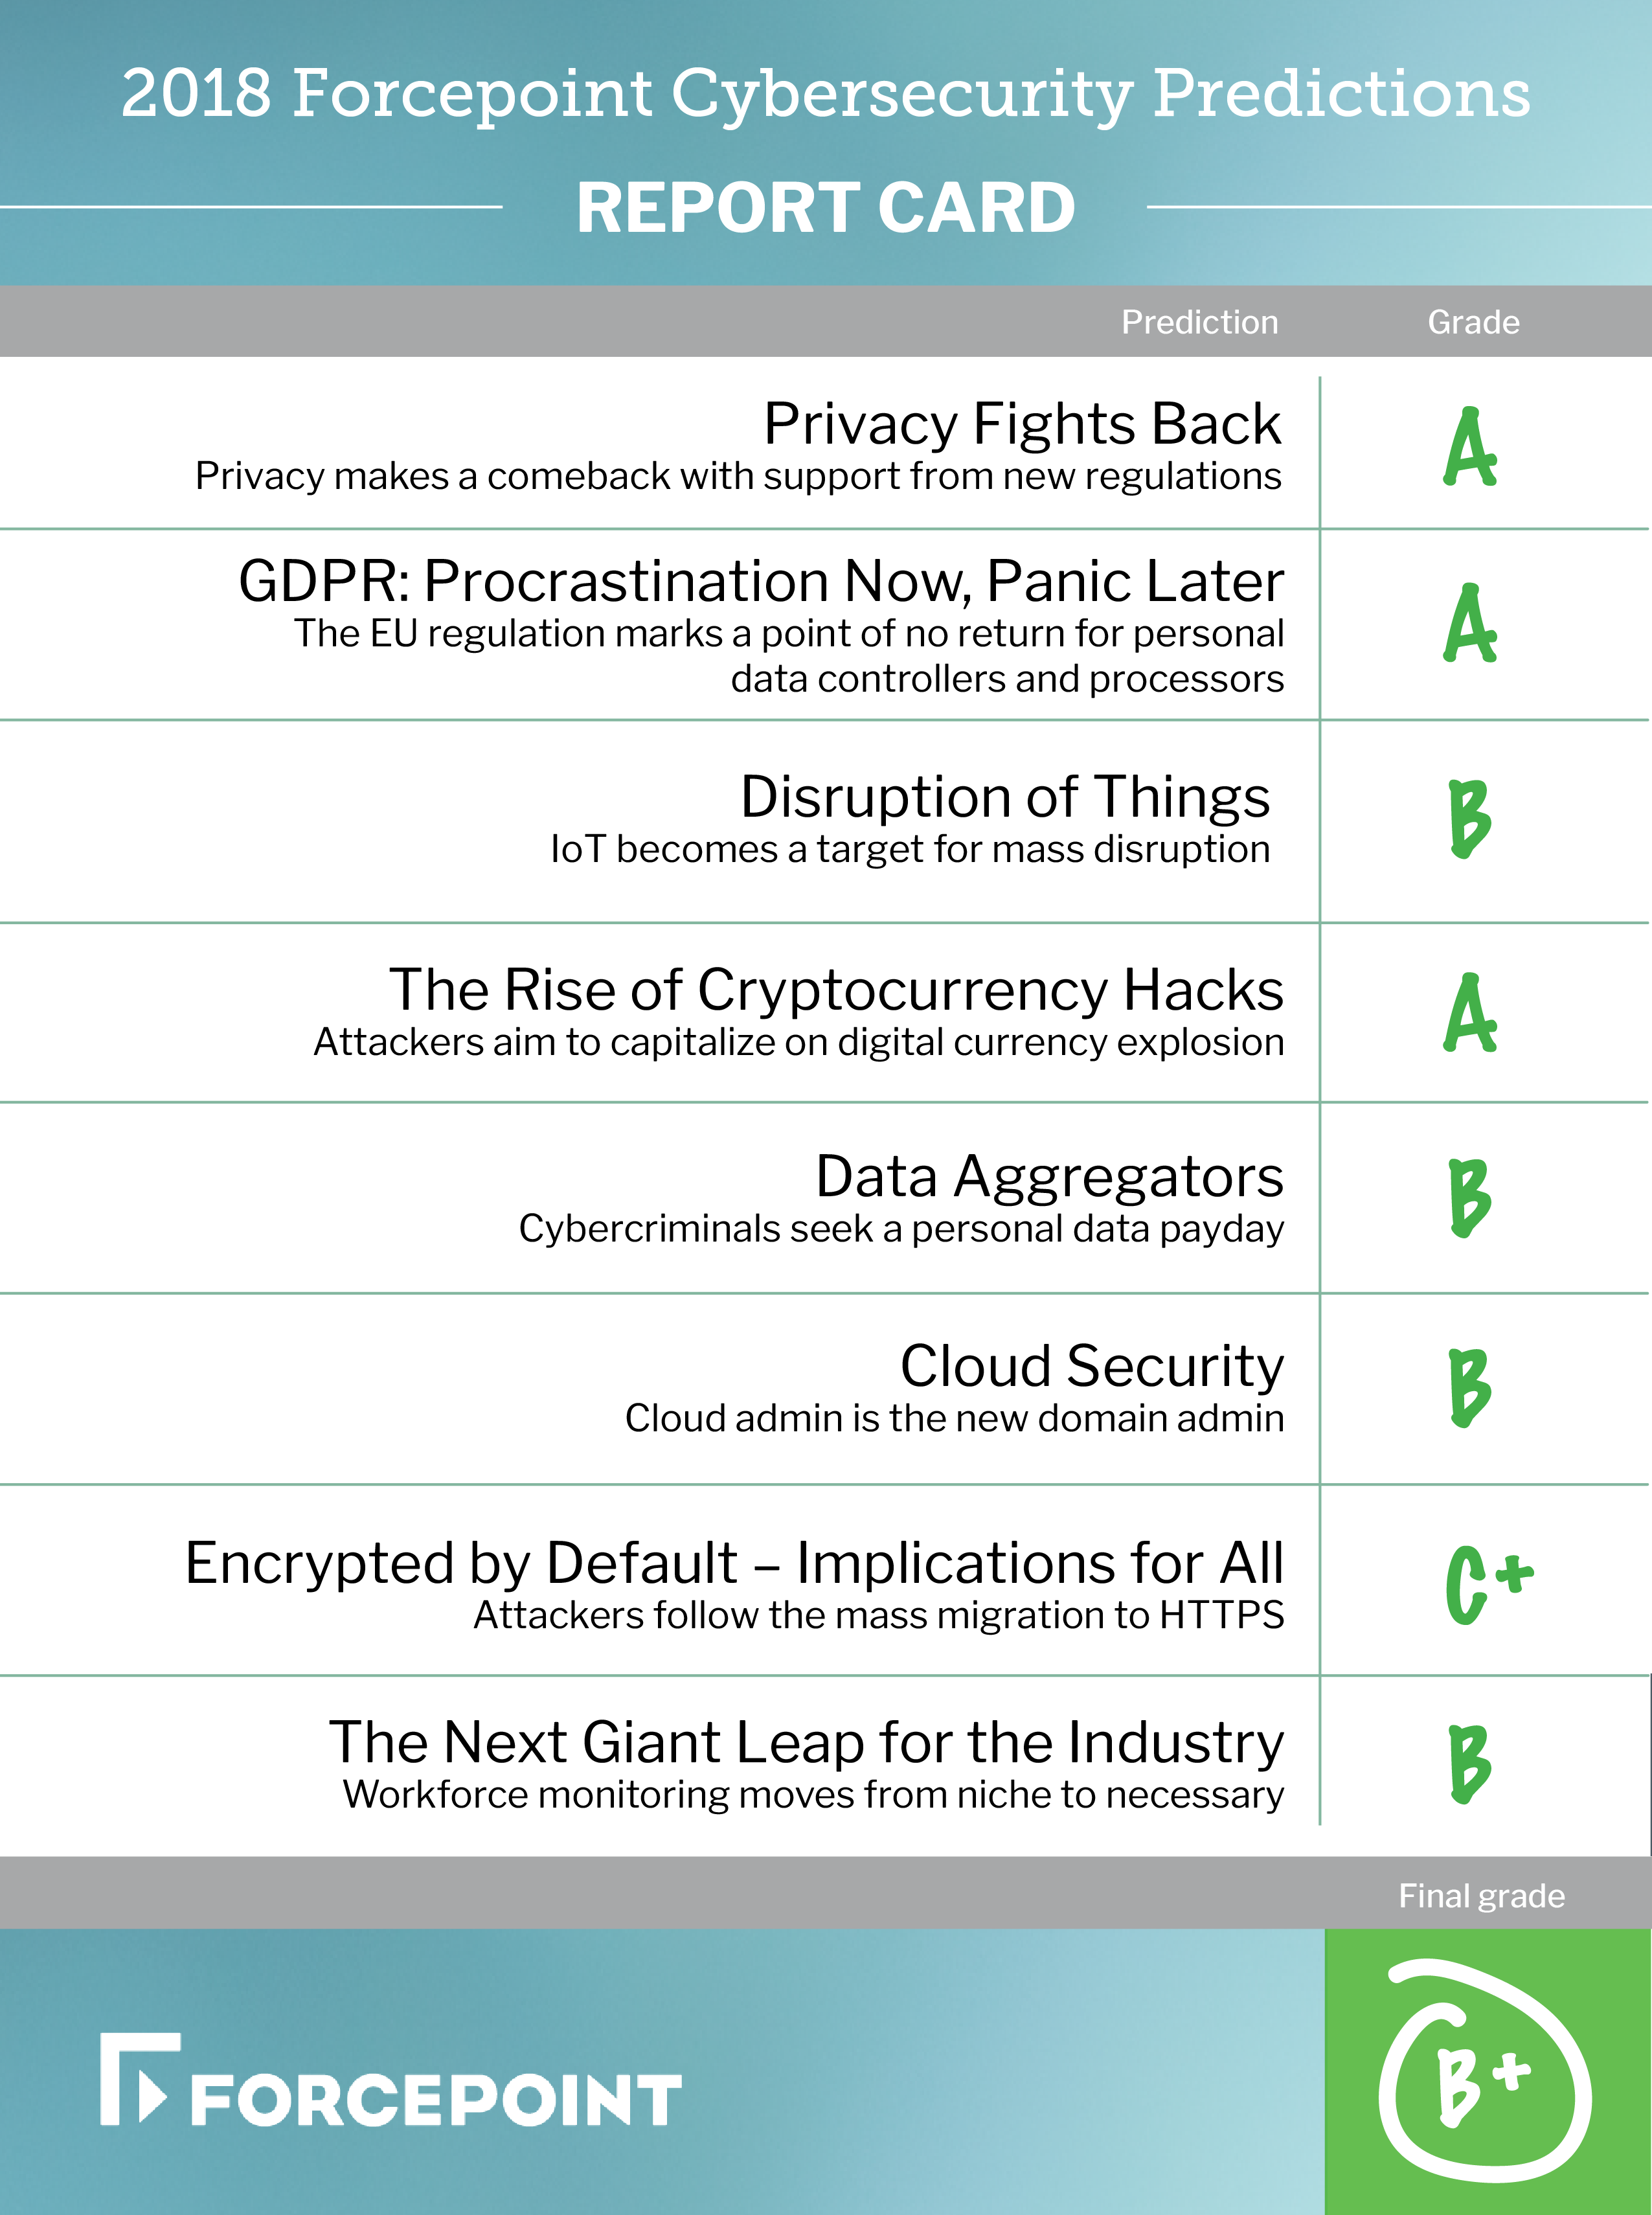 Cybersecurity Predictions 2018 – How did we do? | Forcepoint